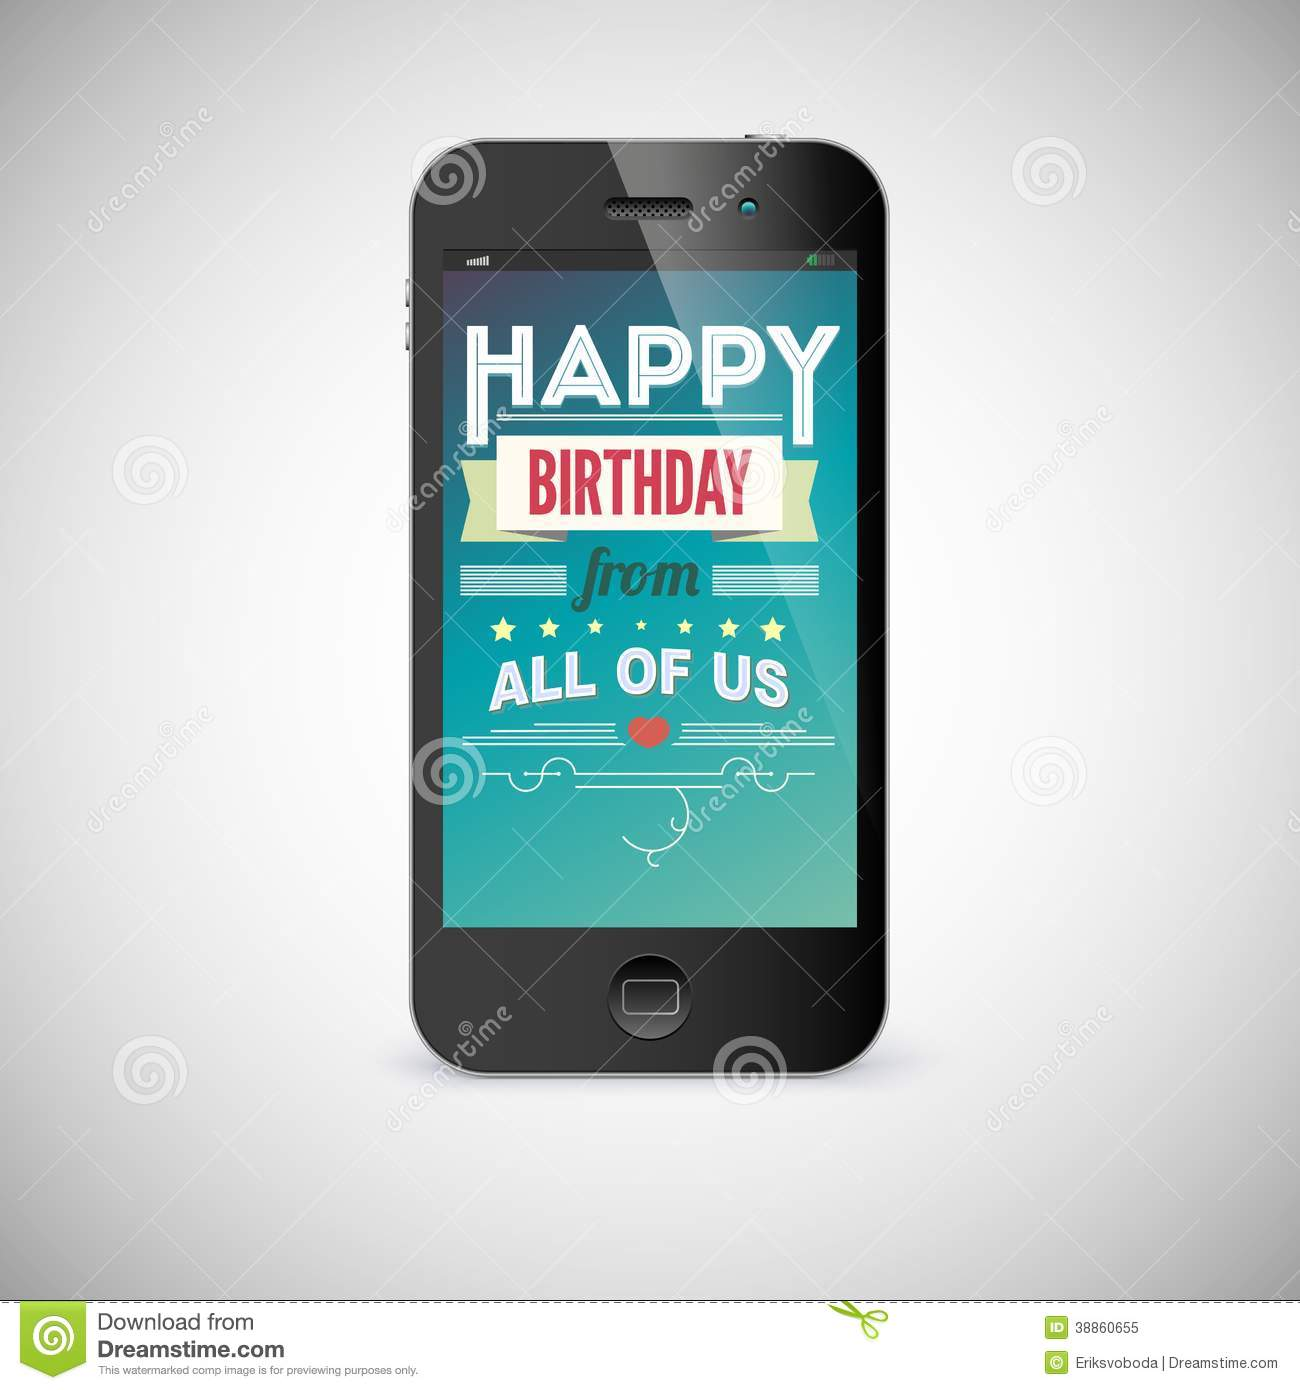 birthday greeting card on screen of mobile phone stock illustration image 38860655. Black Bedroom Furniture Sets. Home Design Ideas